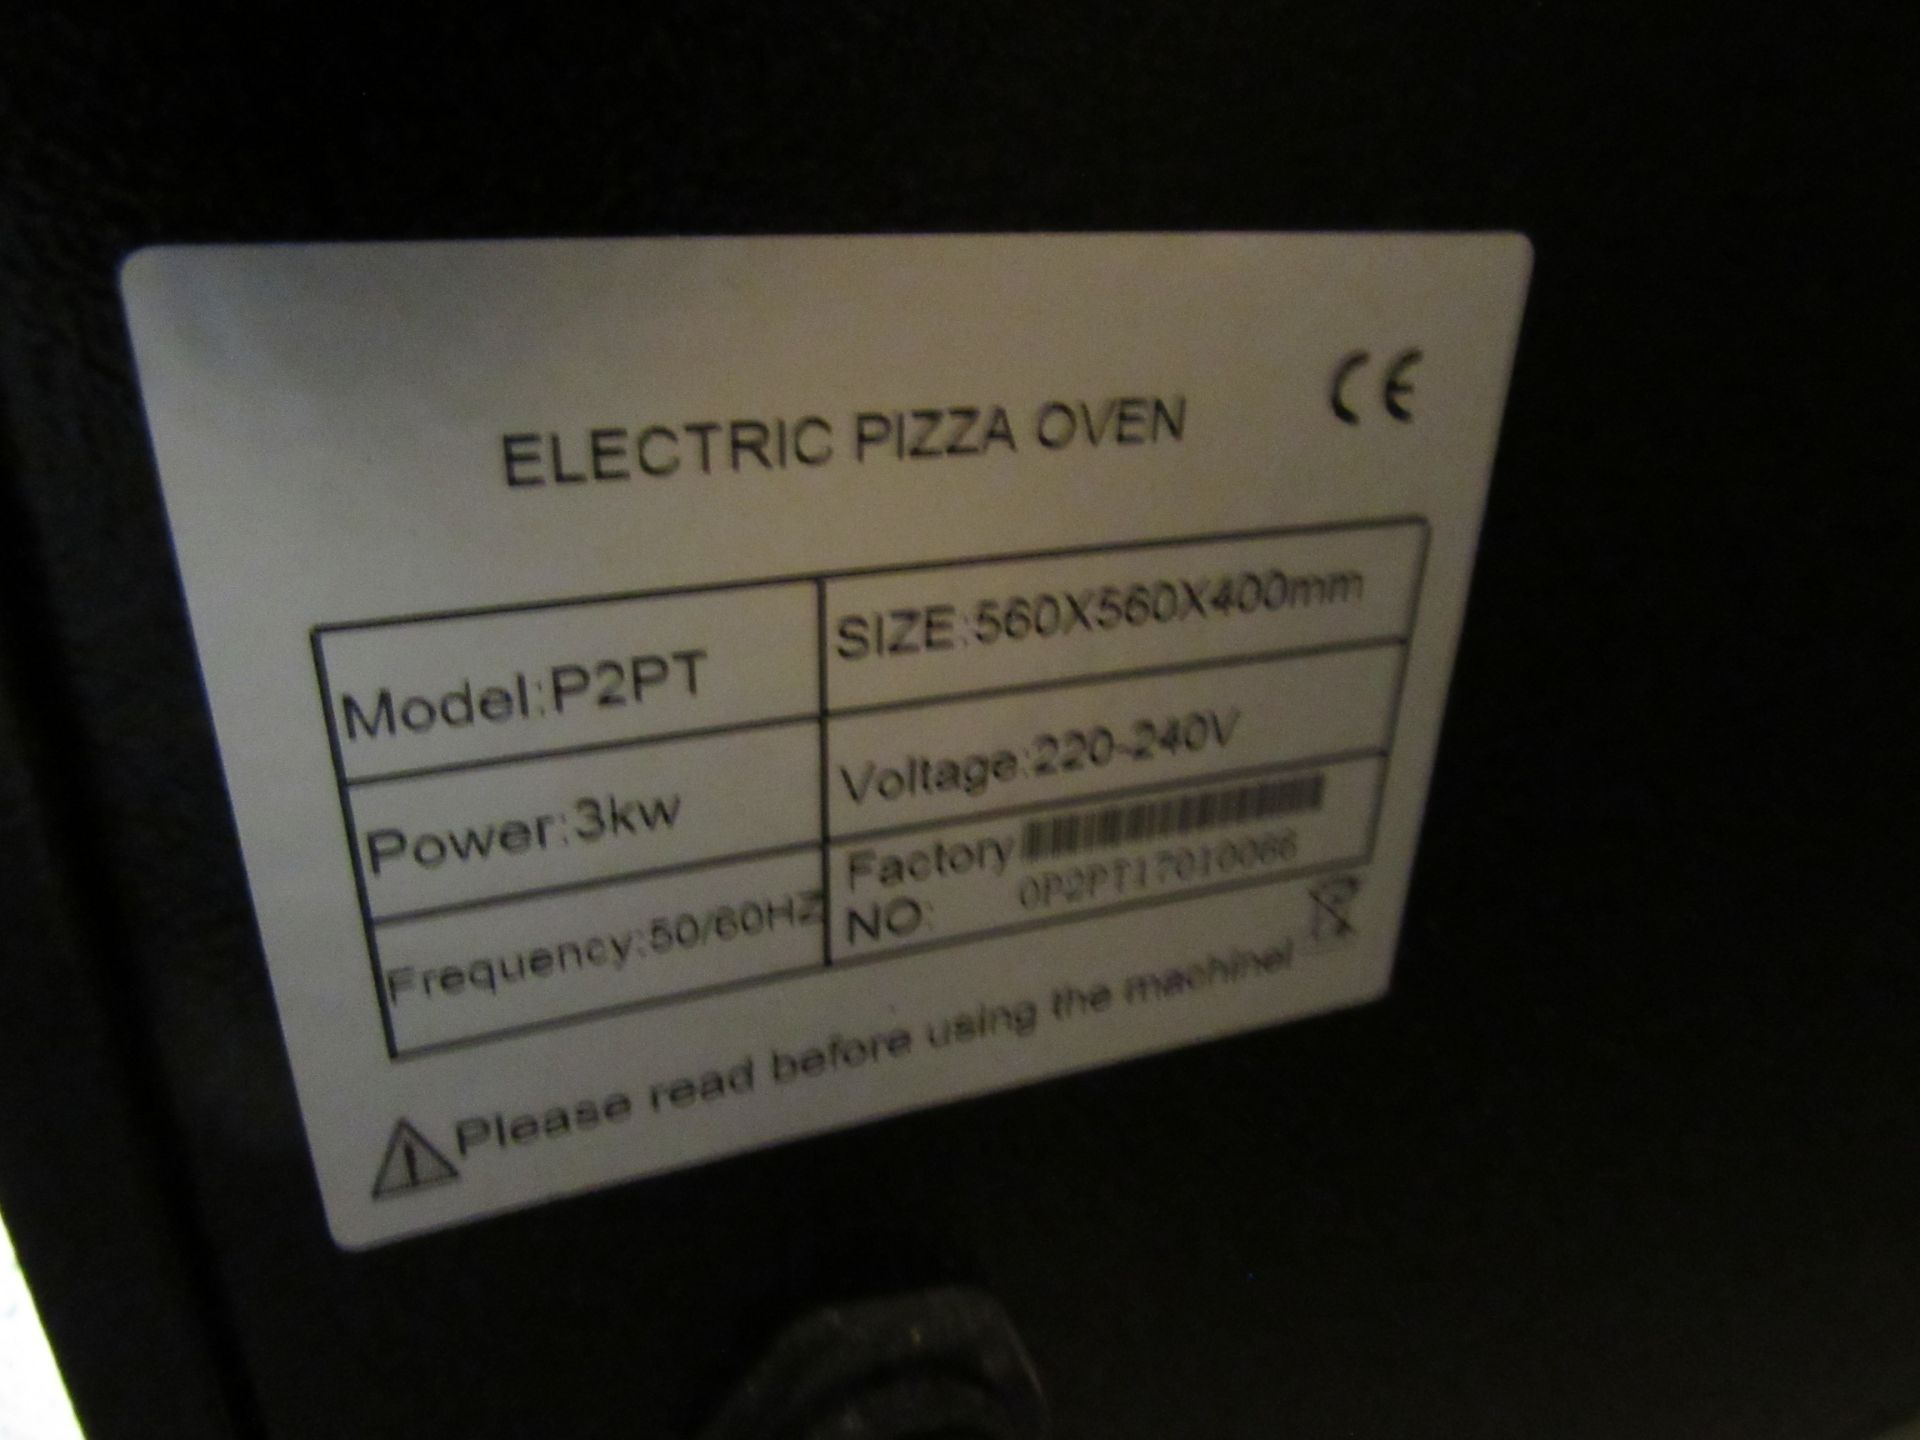 Electric Pizza Oven, P2PT 560x566x400mm - Image 5 of 5